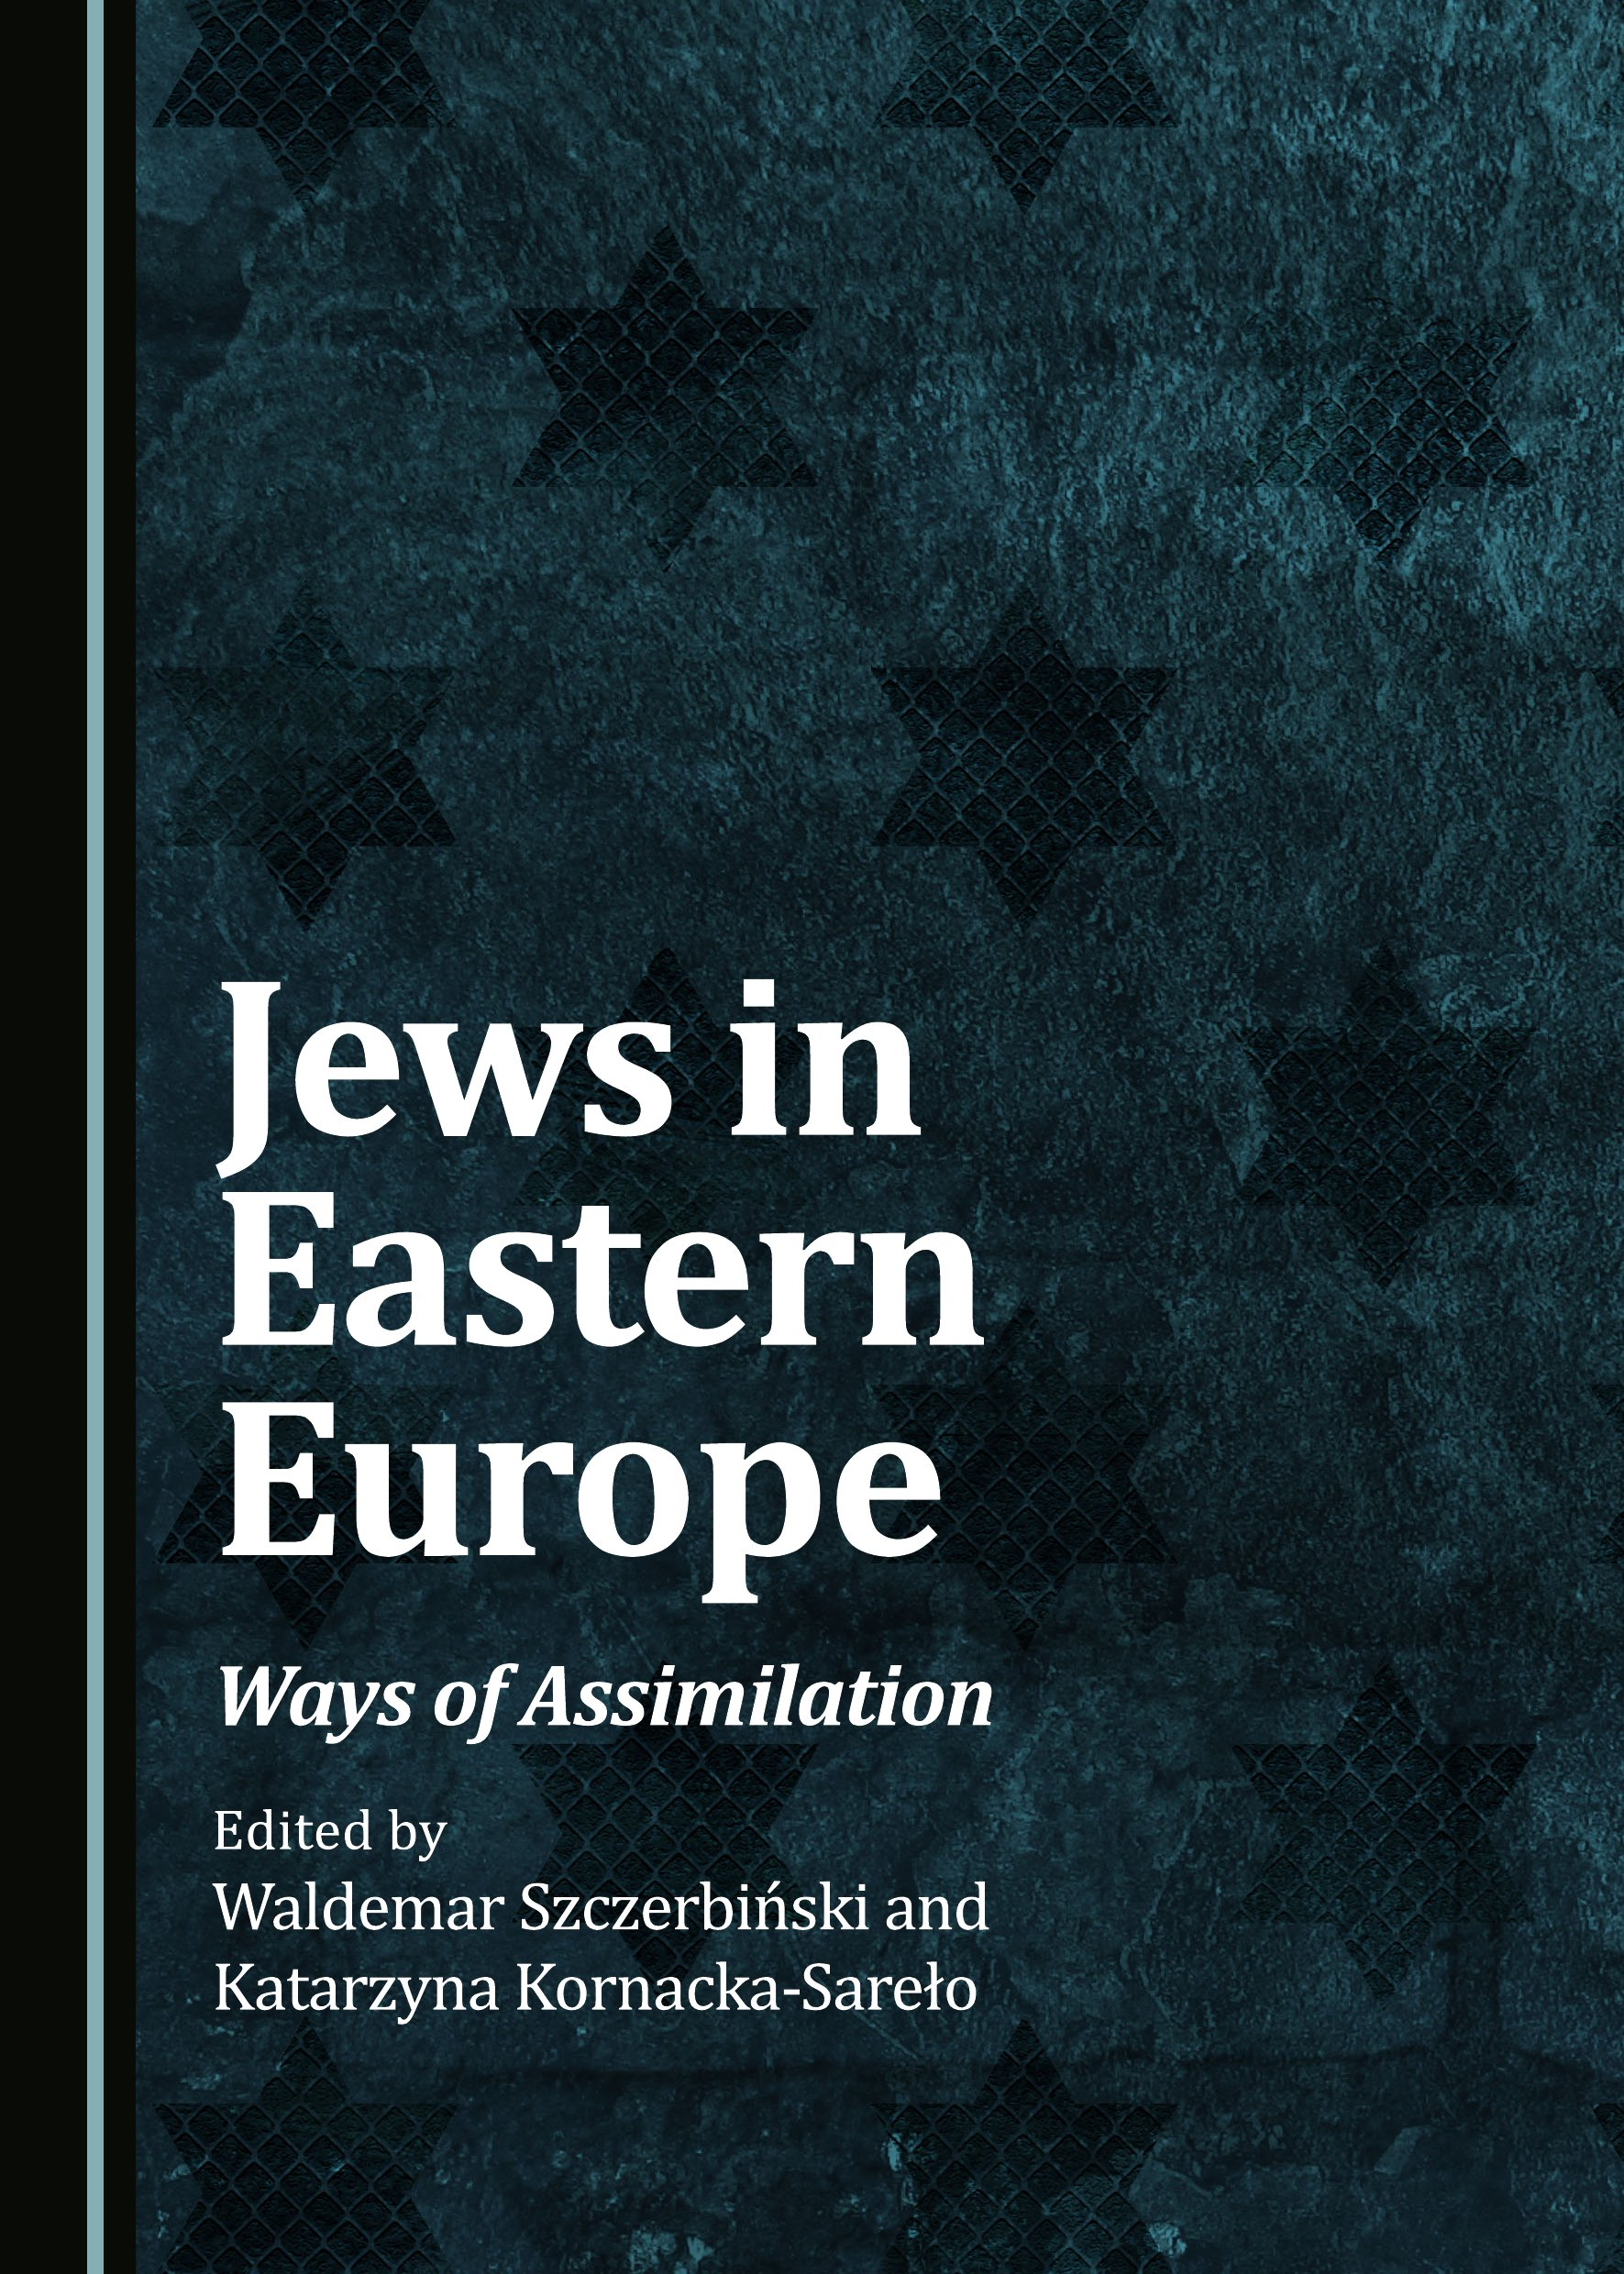 Jews in Eastern Europe: Ways of Assimilation